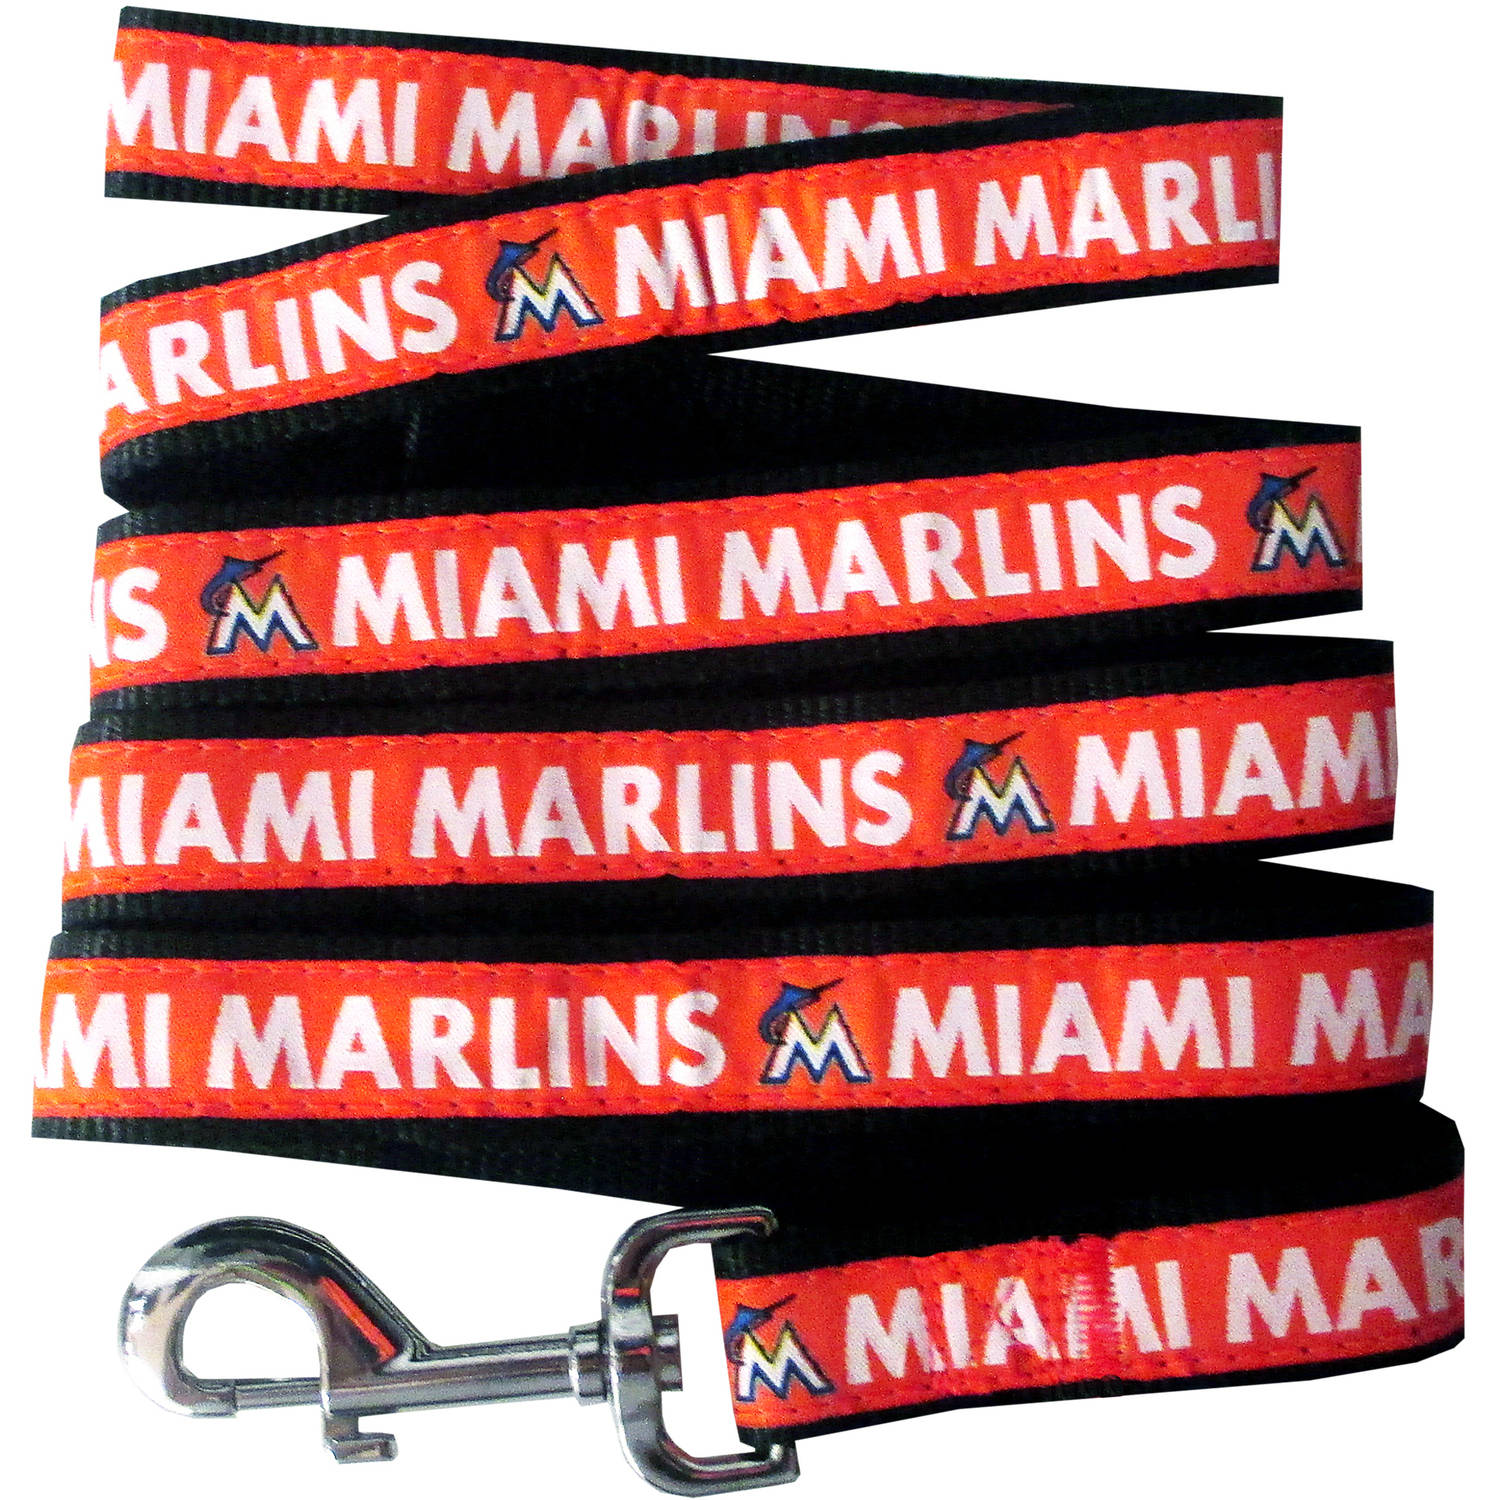 Pets First Miami Marlins Pet Leash, Small